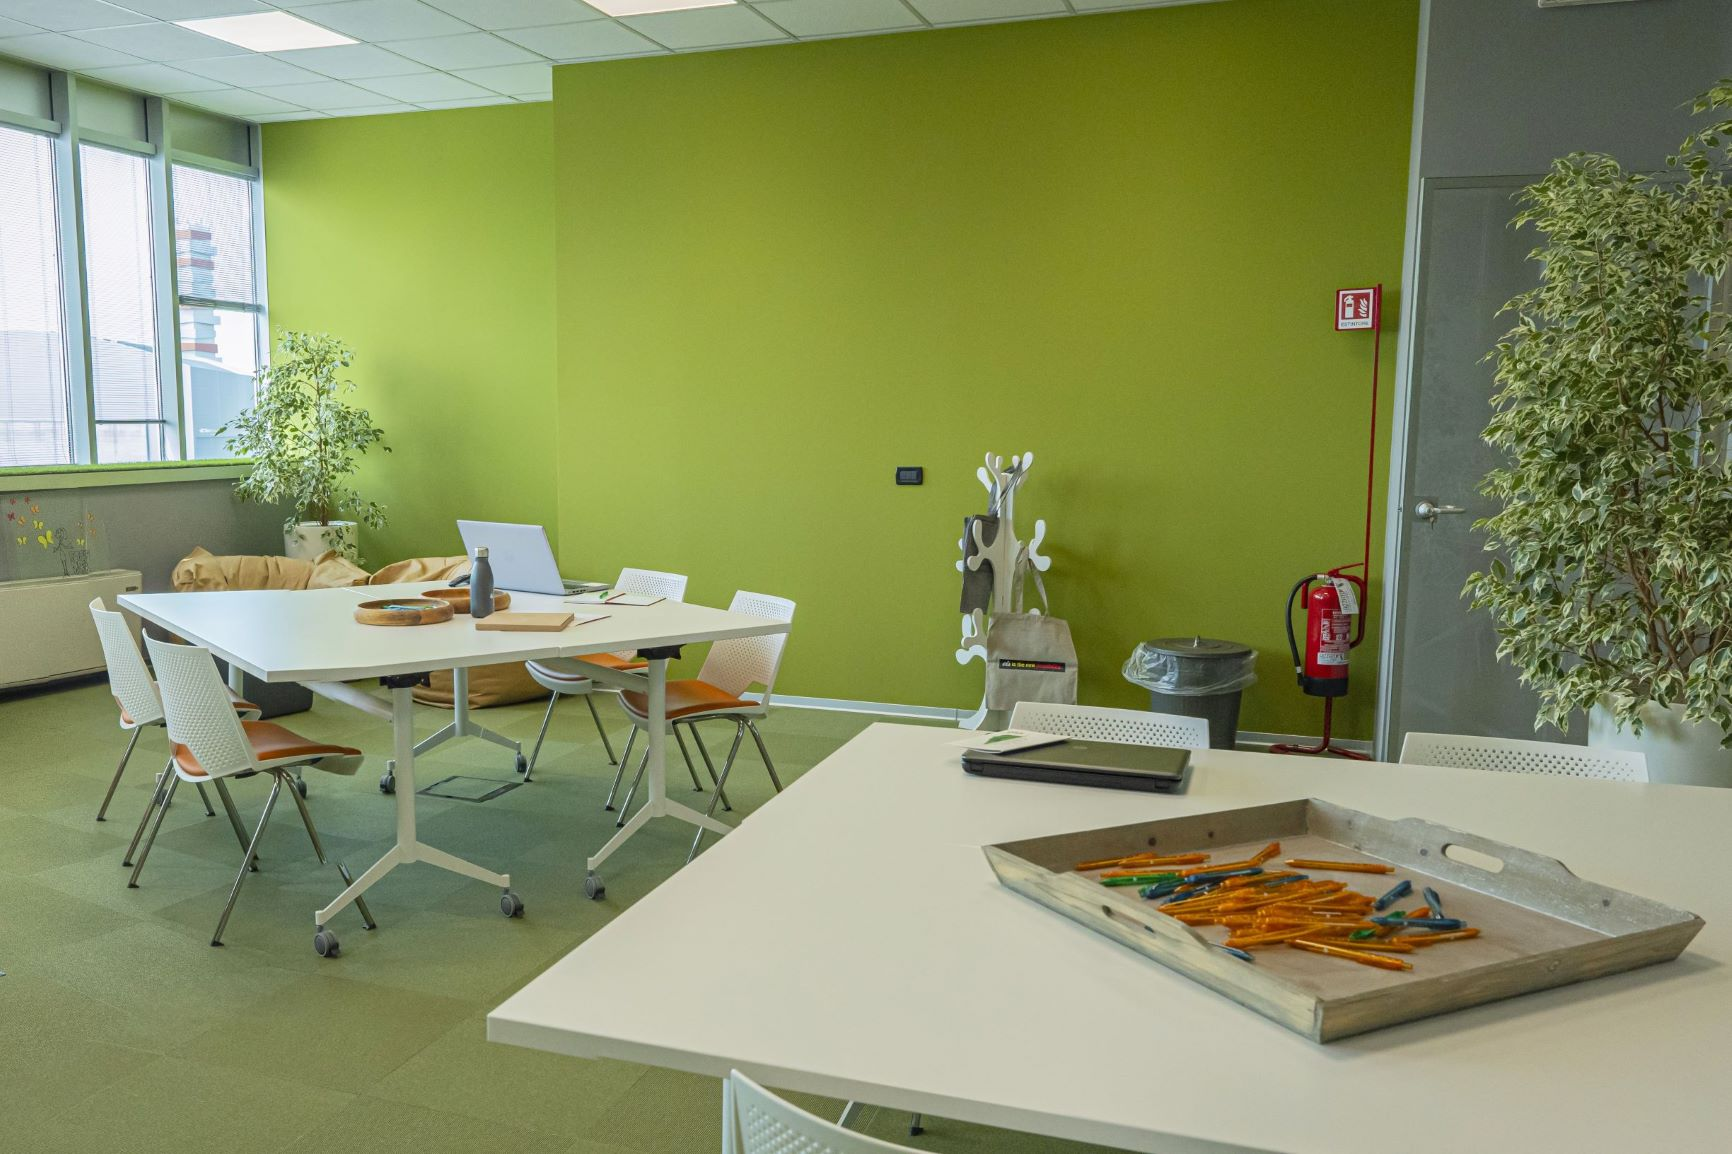 City coworkingarden - Coworking 2 by eis